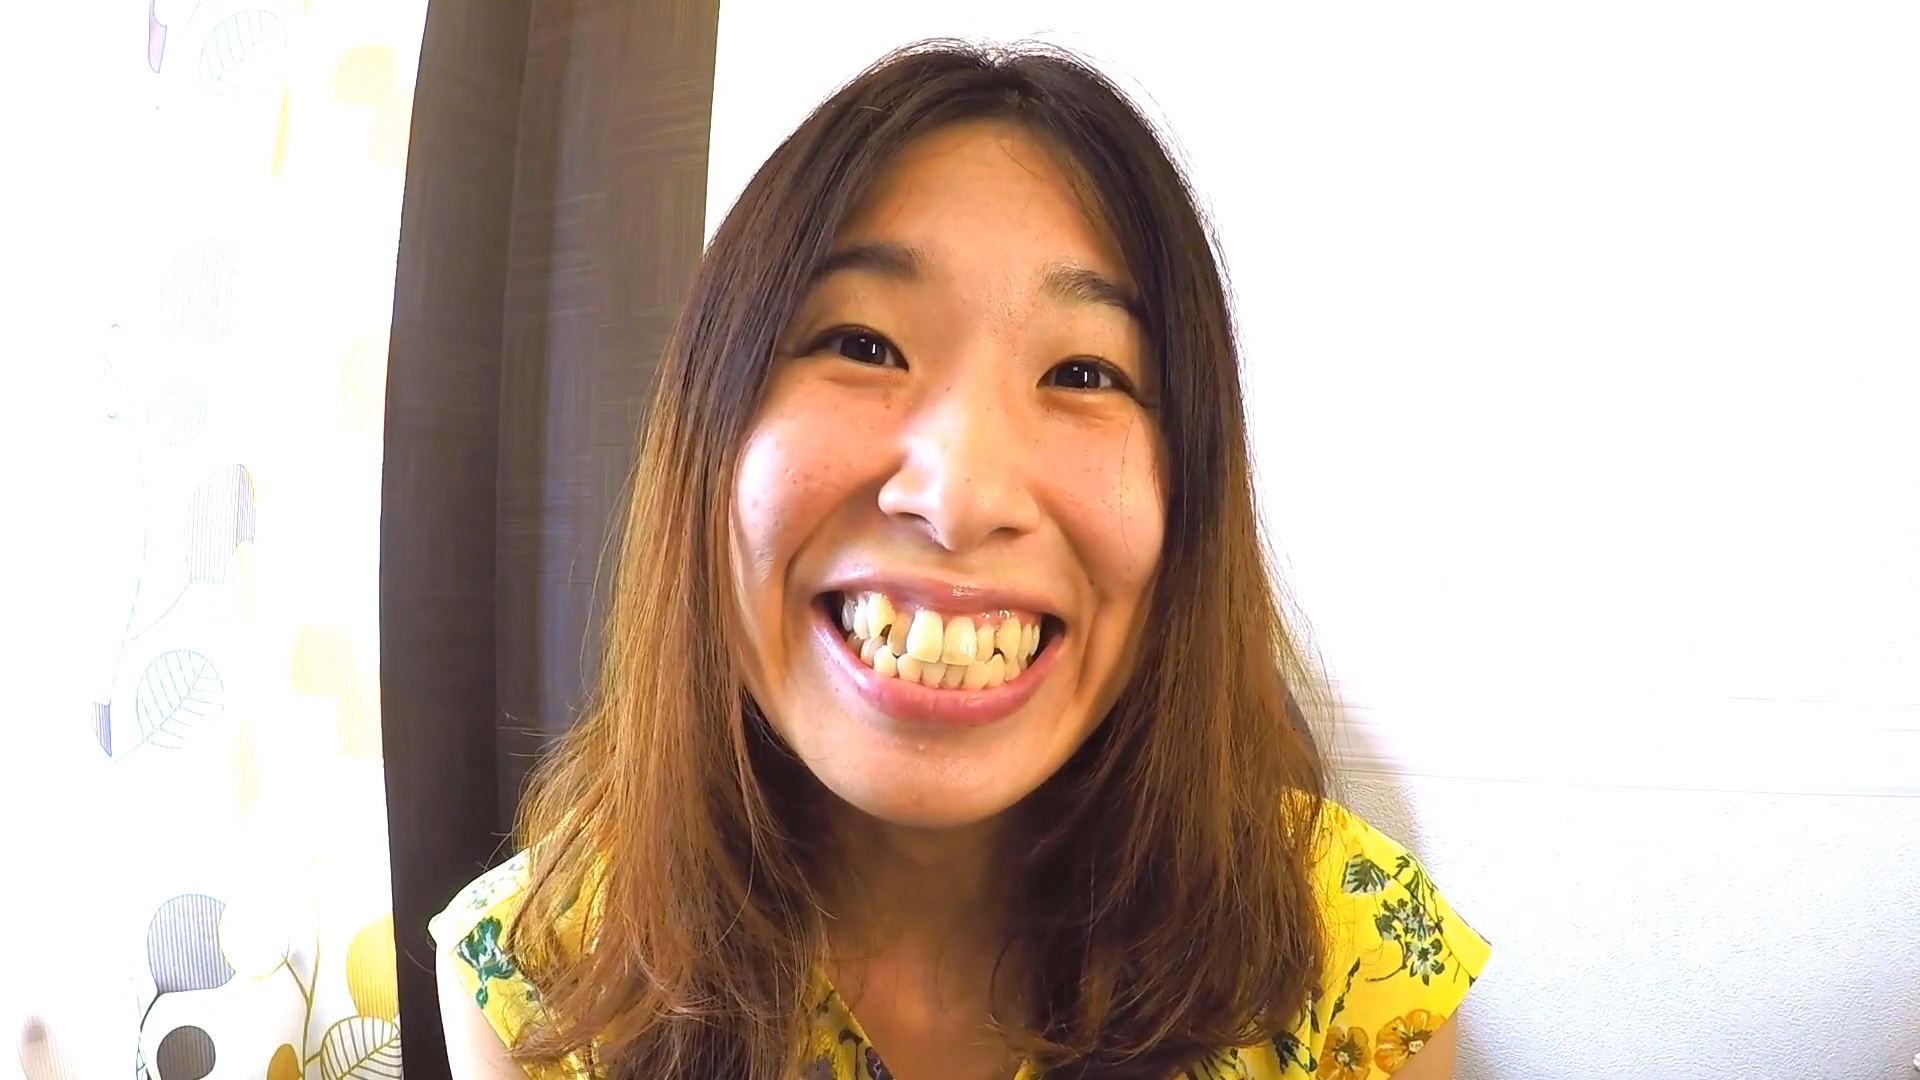 YouTuberの割れ汚舌 (23)